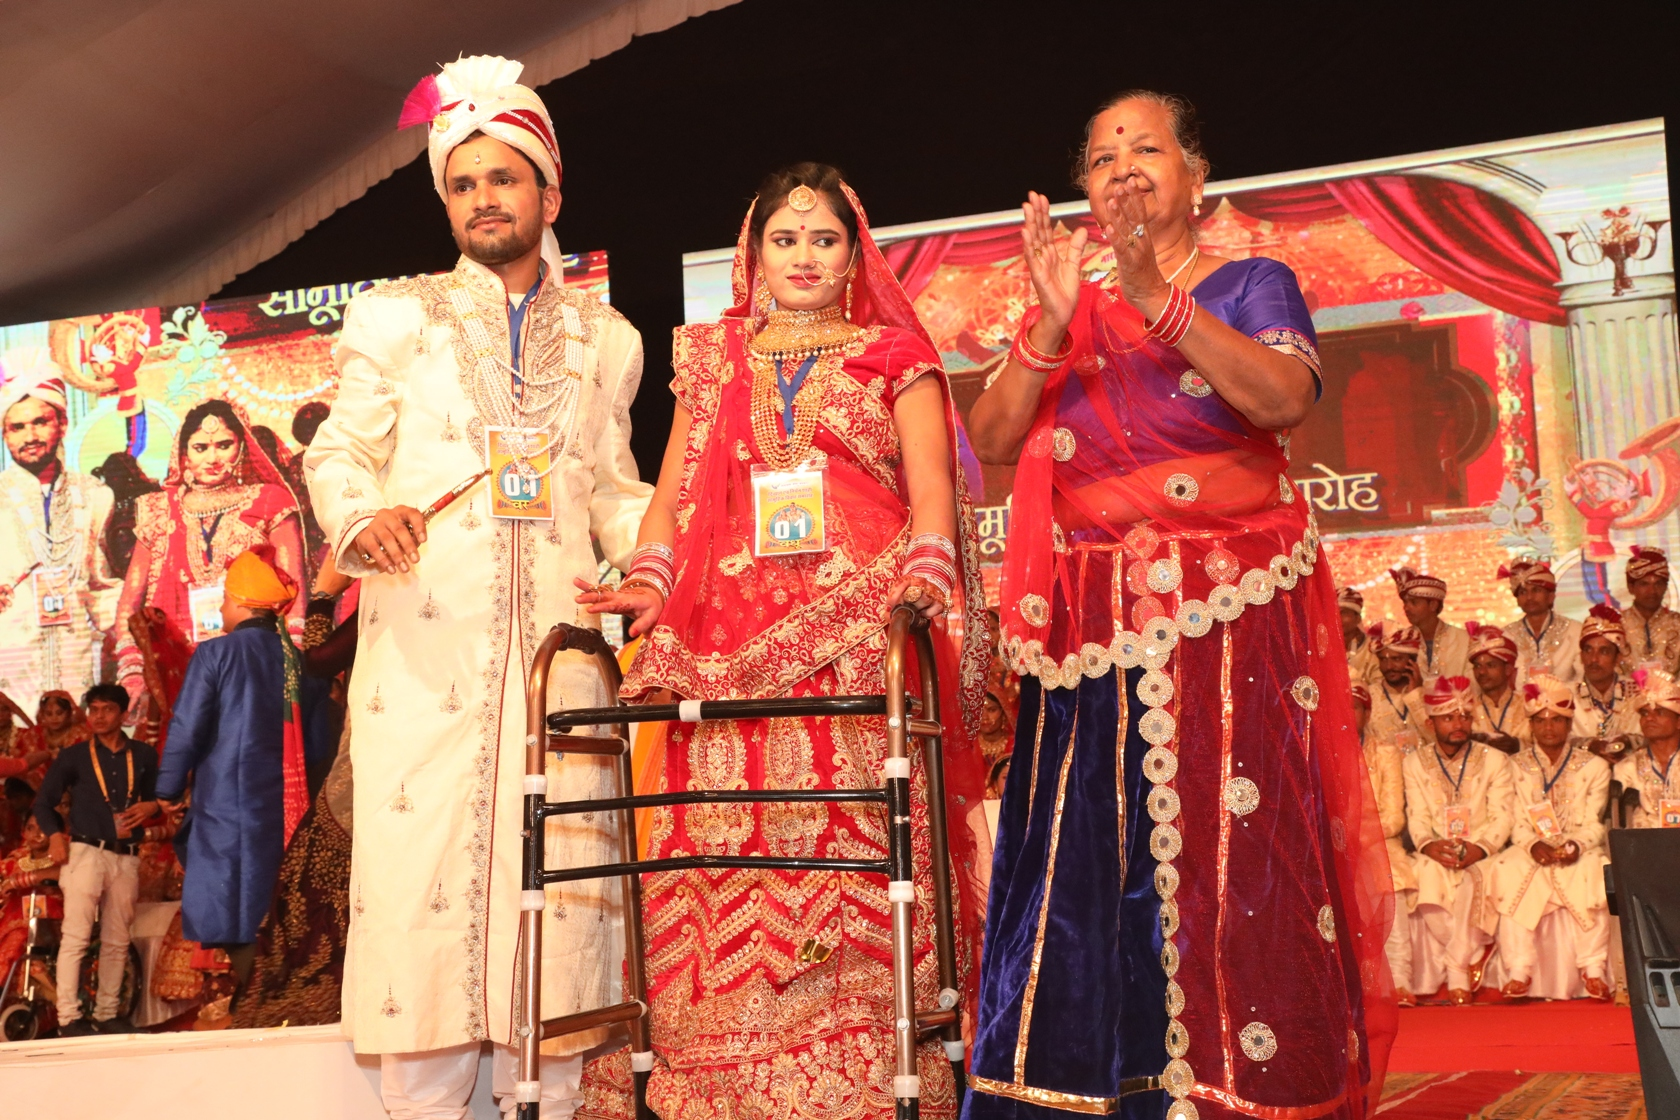 Divyang and underprivileged couples tie the knot at Smart Village in Narayan Seva Sansthan